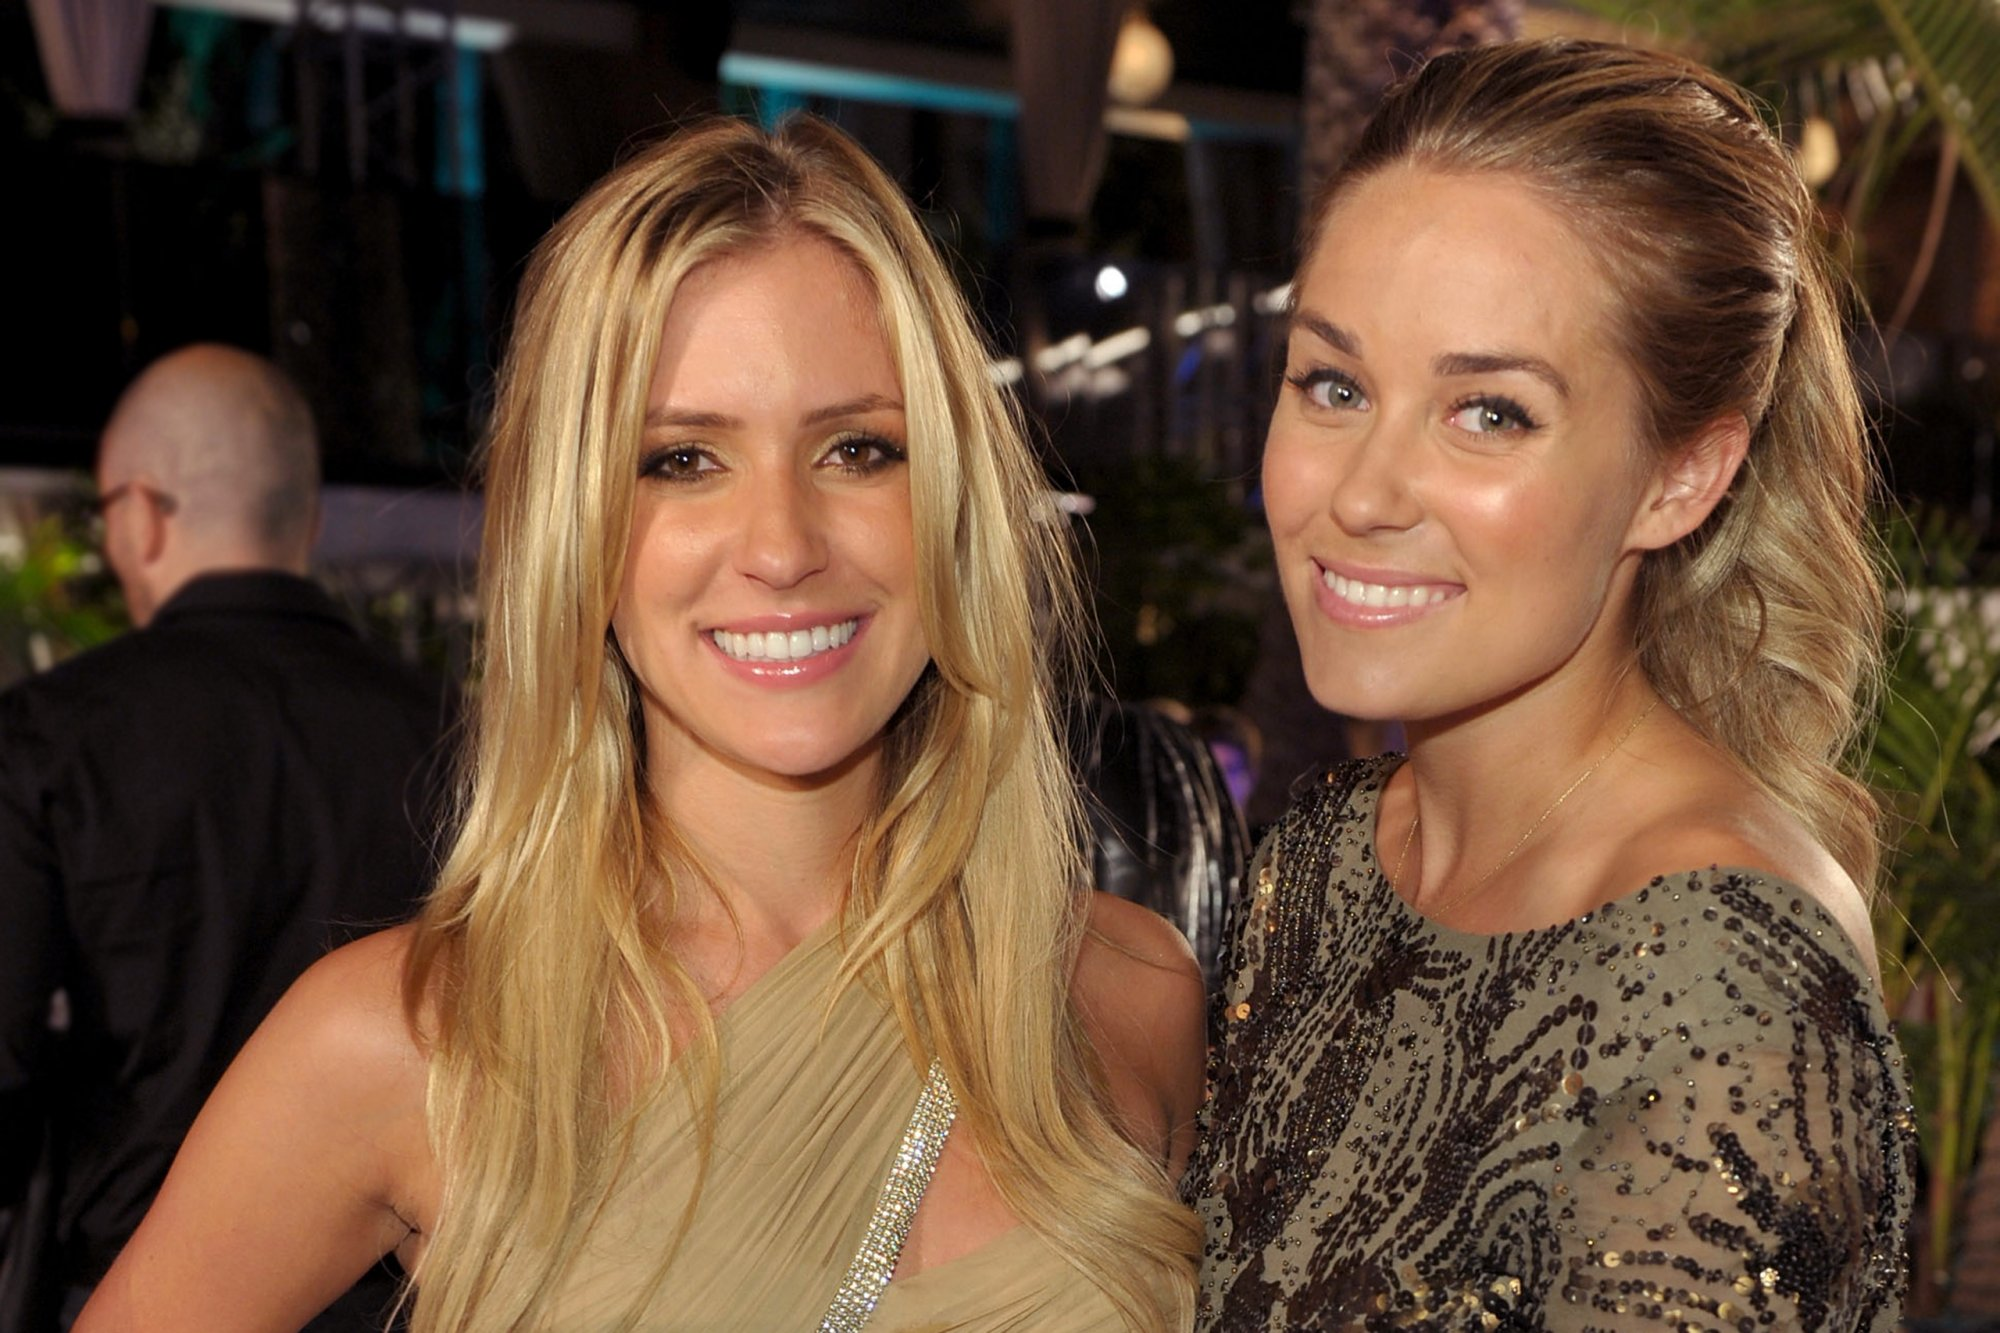 Kristin Cavallari Welcomes Baby Girl Saylor James Cutler